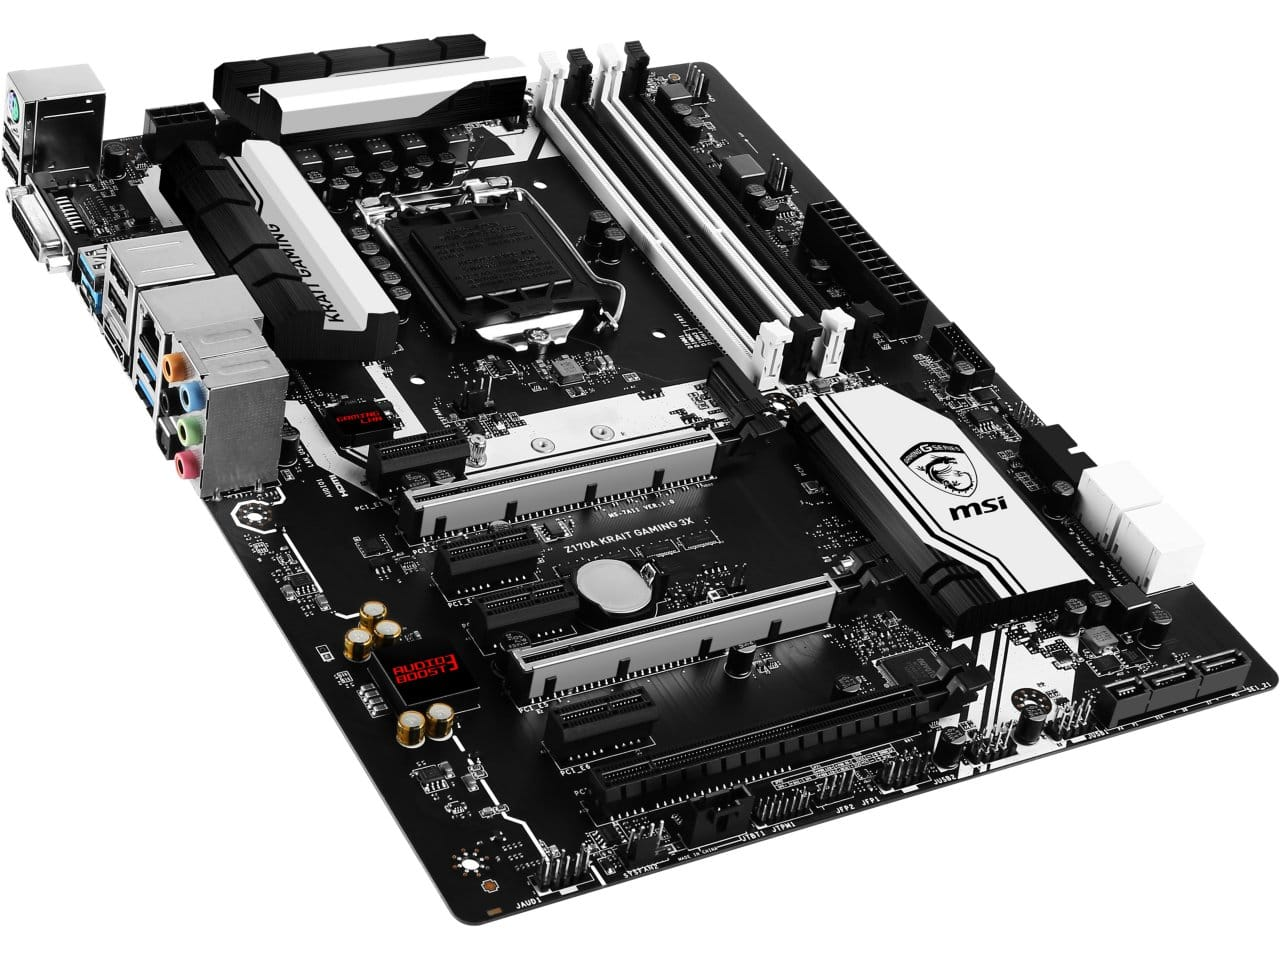 MSI Z170A KRAIT GAMING 3X ATX LGA1151 Motherboard  $120